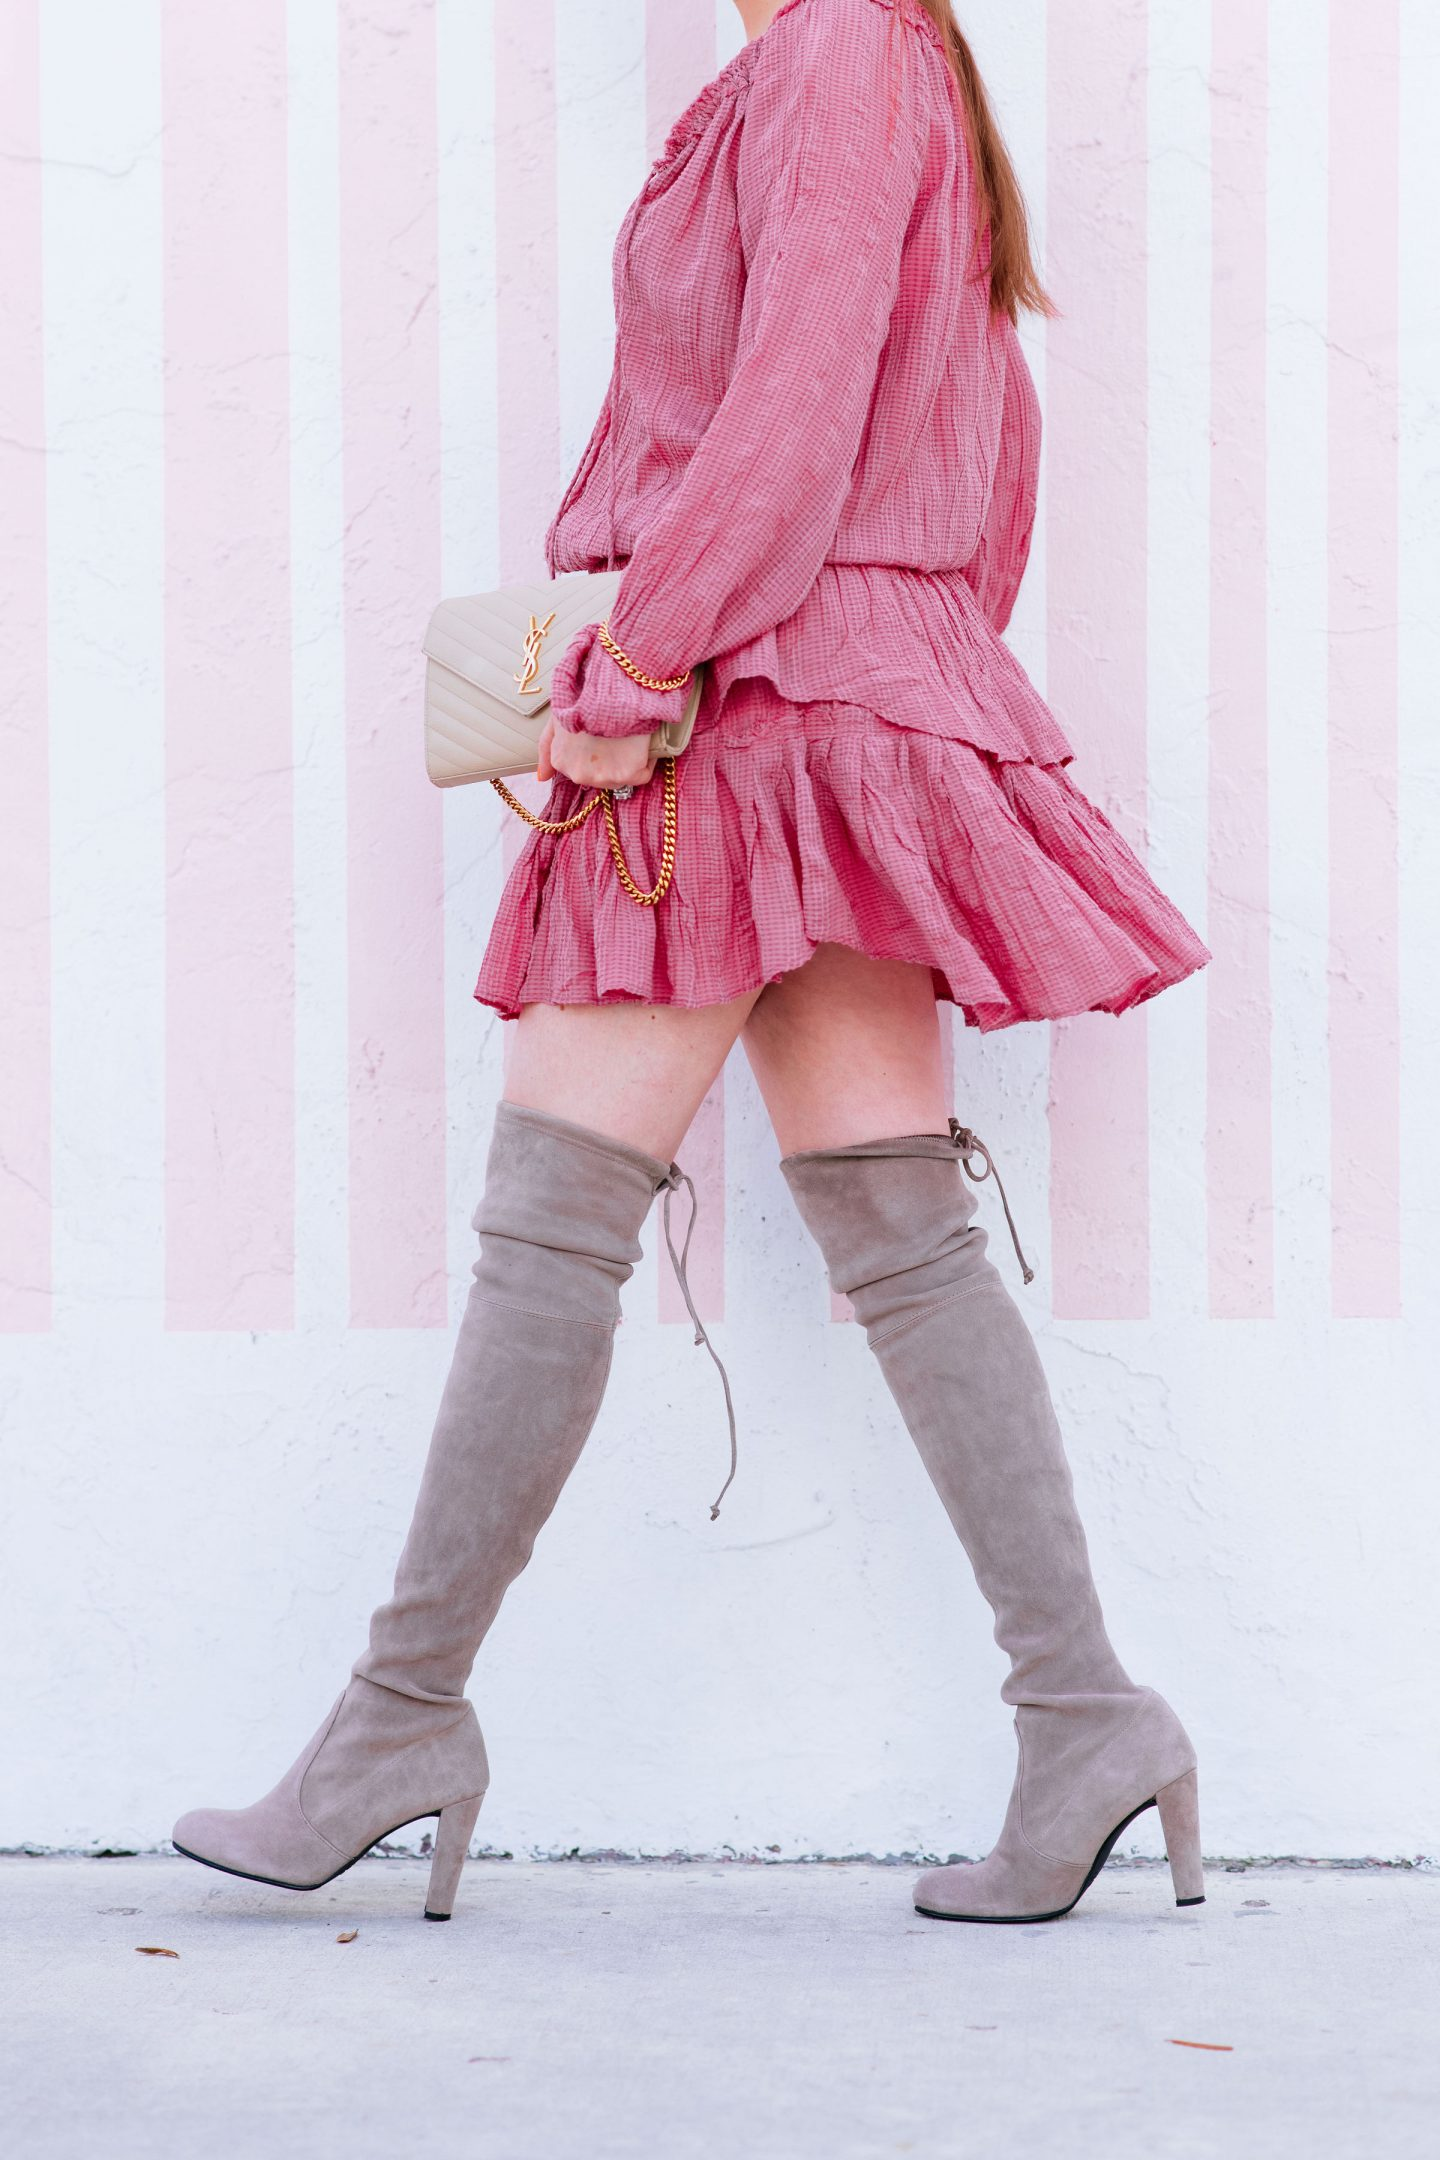 Best way to wear over the knee boots without looking trashy, over the knee boots, loveshackfancy popover dress, loveshackfancy pink popover dress, stuart weitzman hiline boots, stuart weitzman nude boots, ysl wallet on chain, how to wear over the knee boots